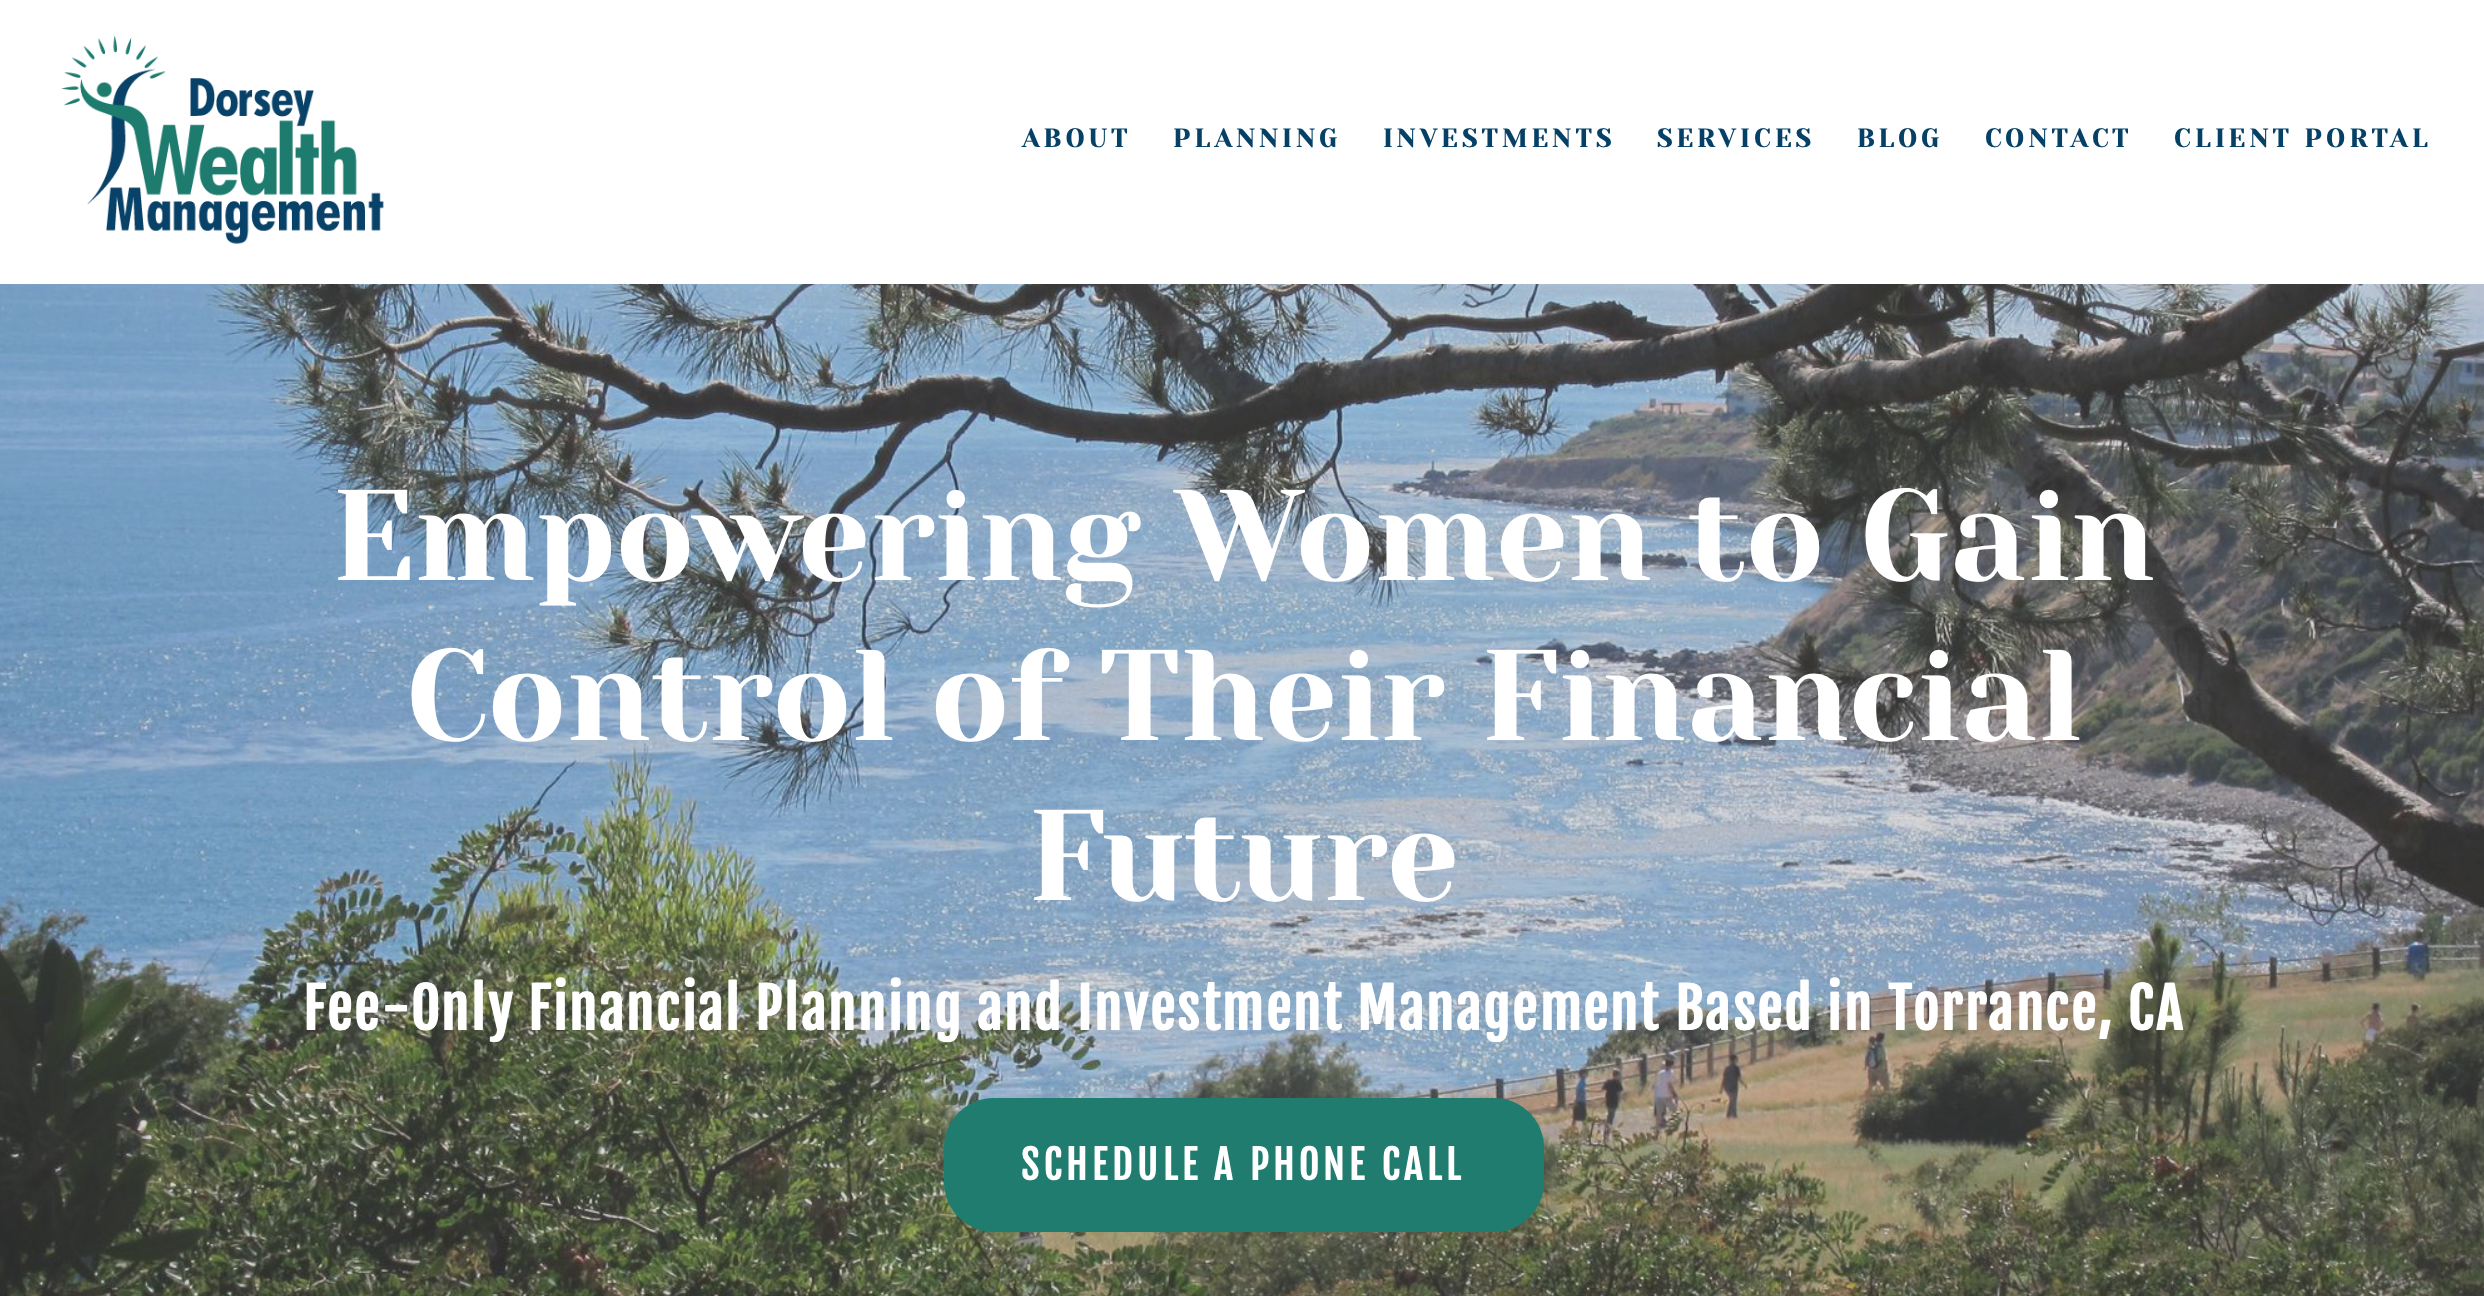 Dorsey Wealth Mgmt CTA on homepage